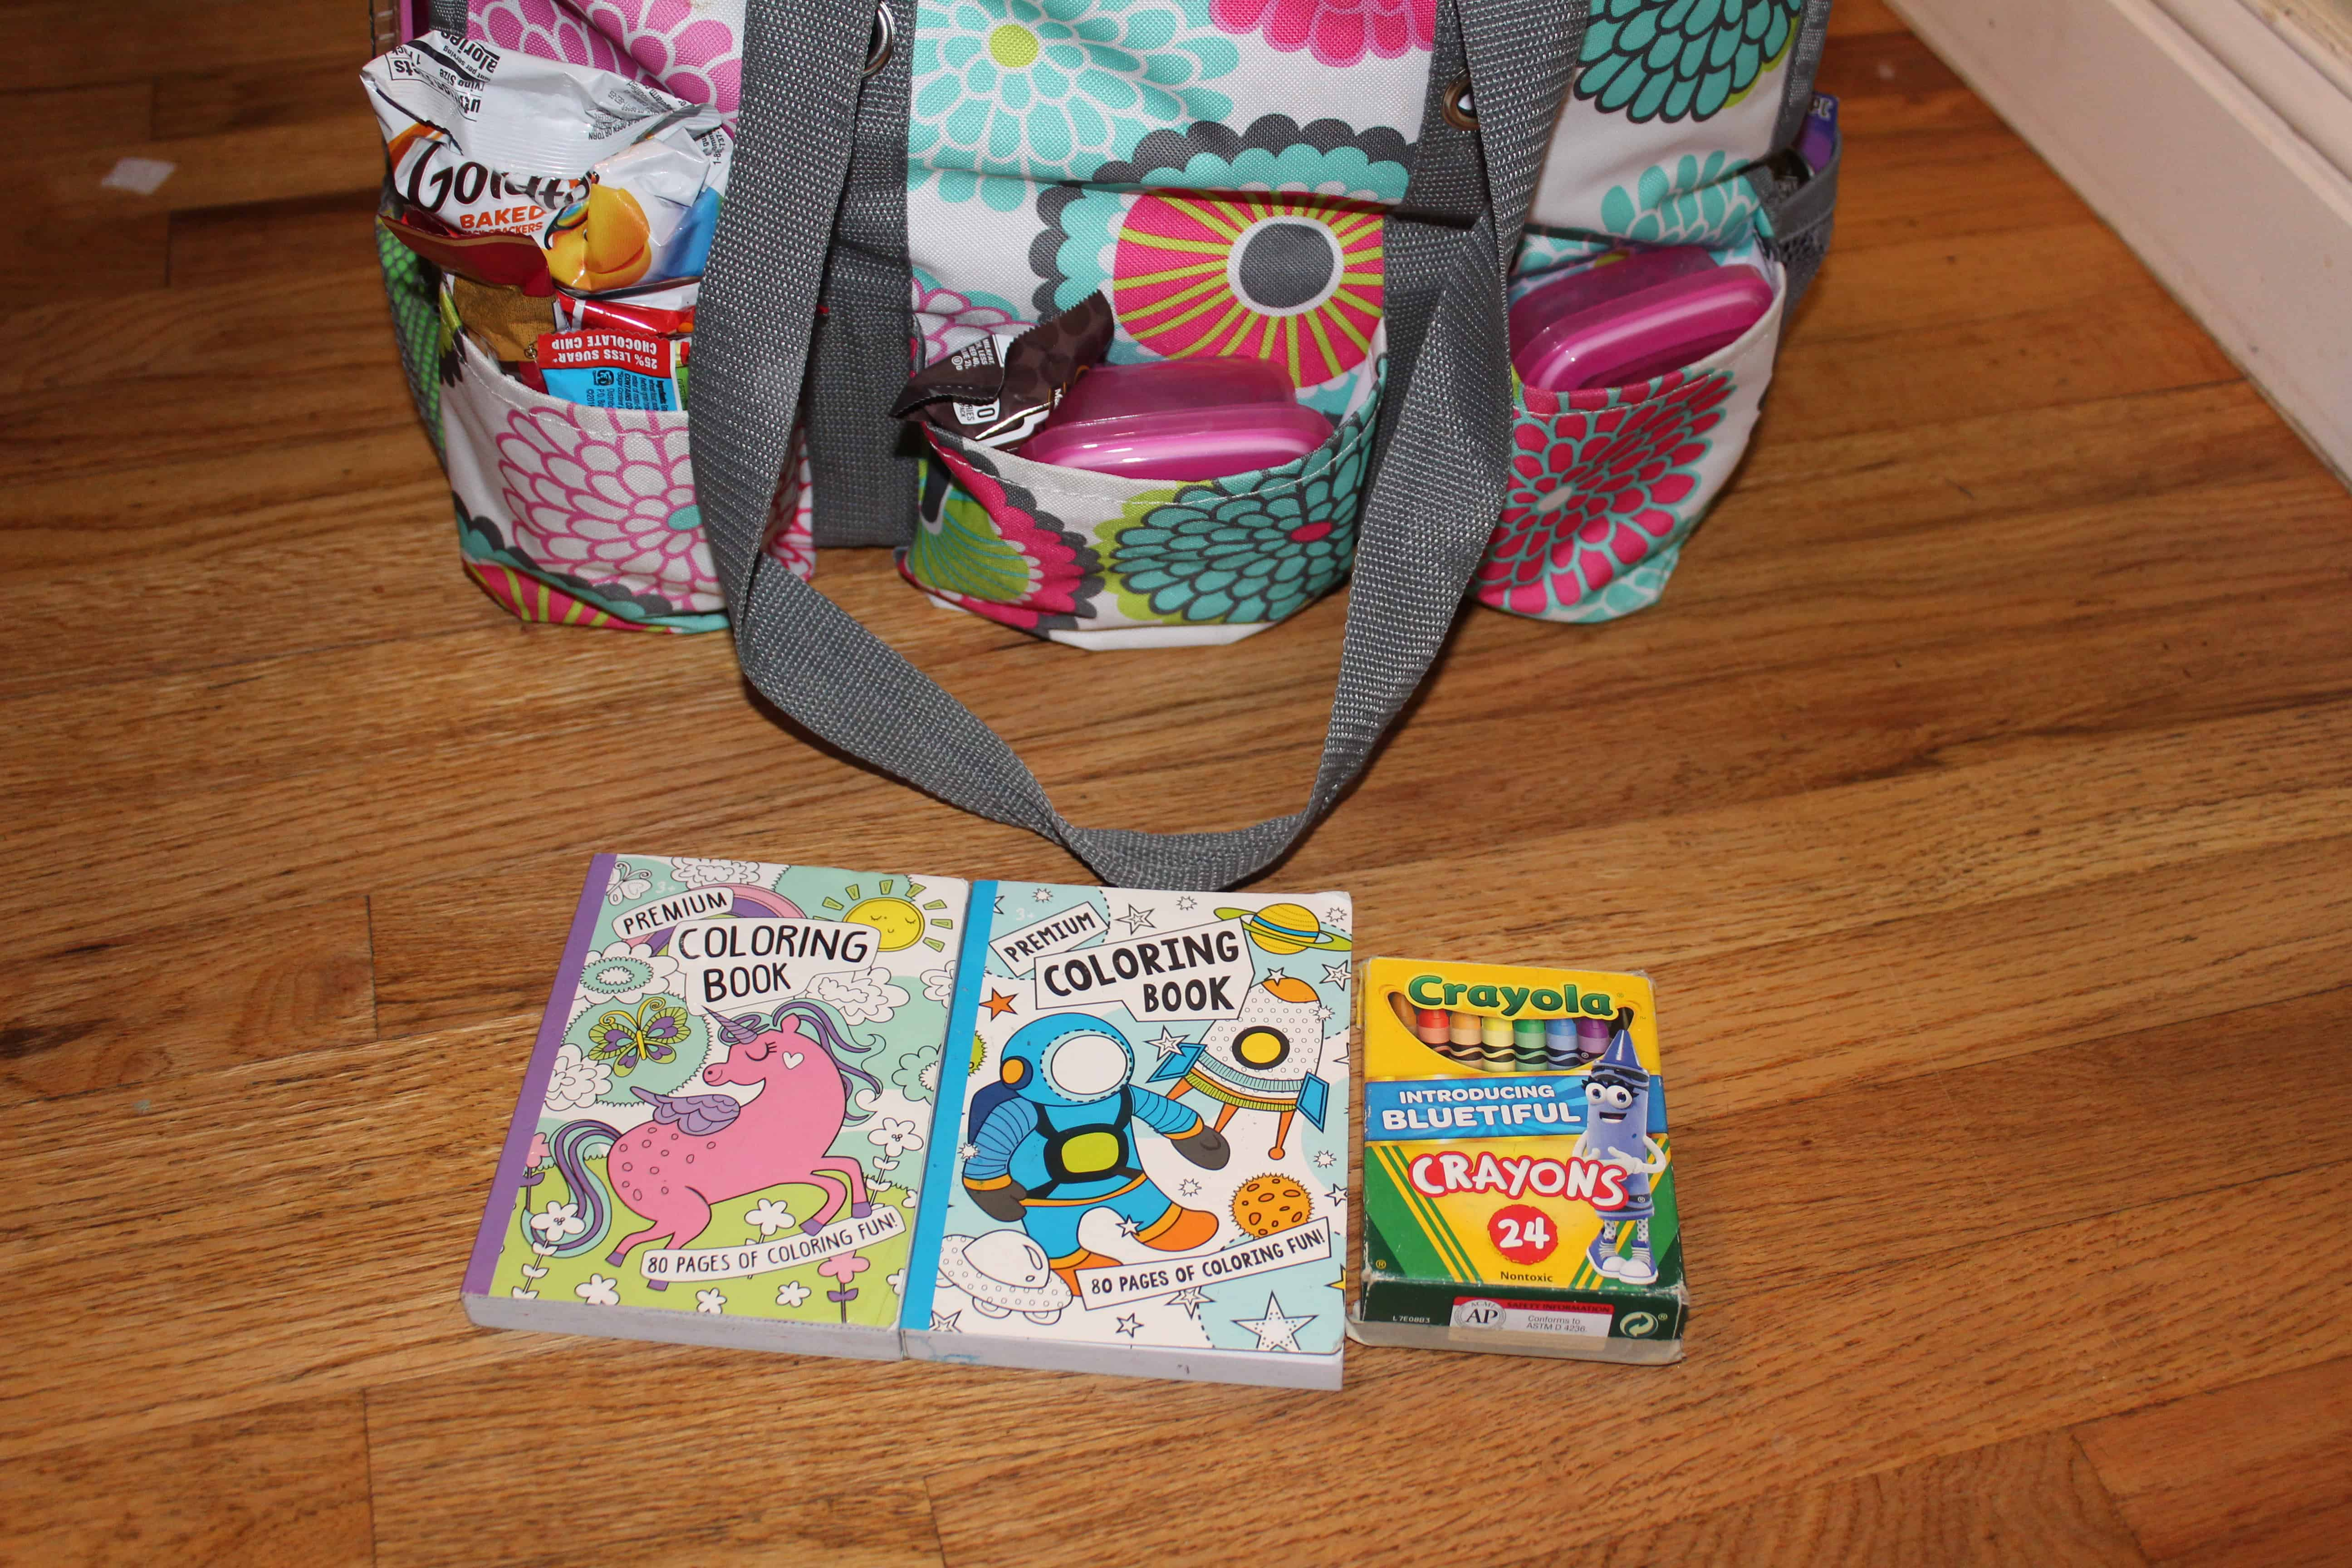 Coloring books and a pack of 24 crayons in front of a travel bag.